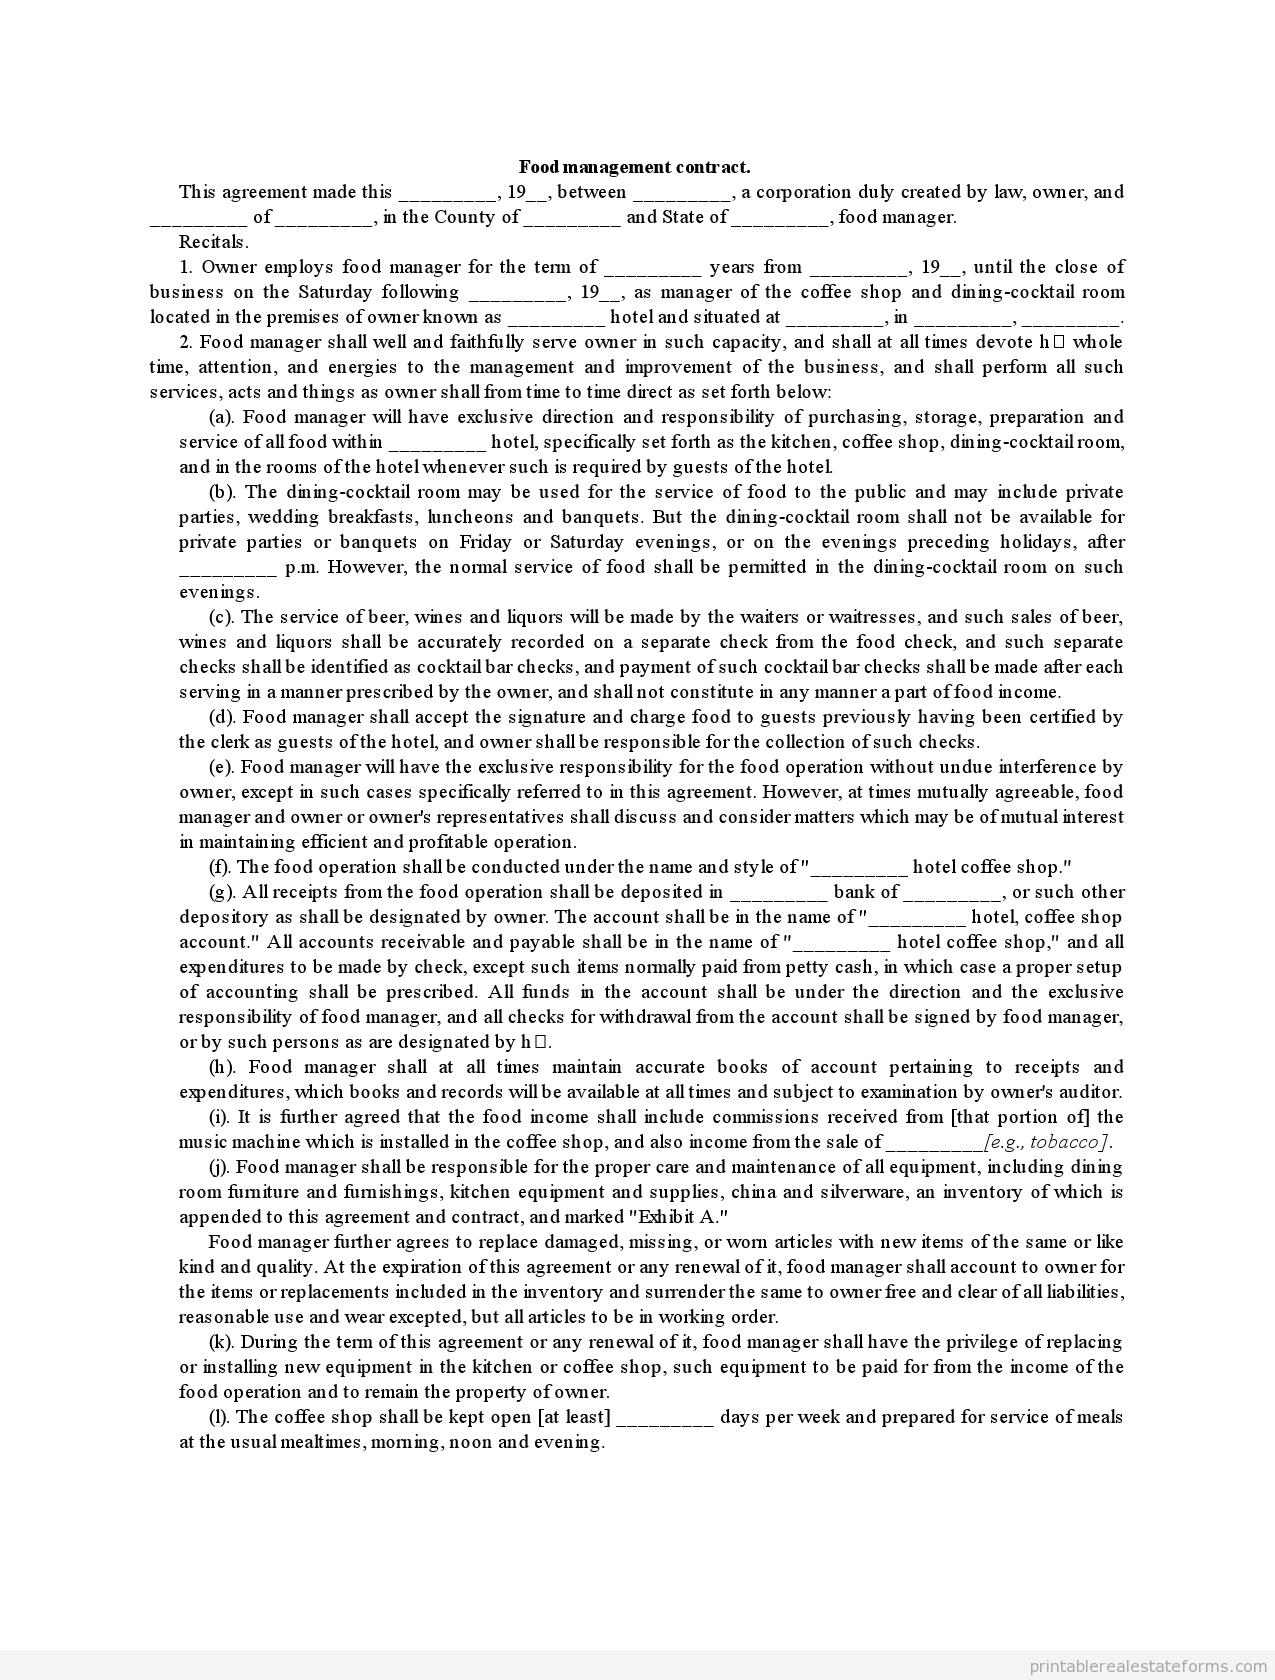 Printable Sample Food Management Contract Form  Generic Legal